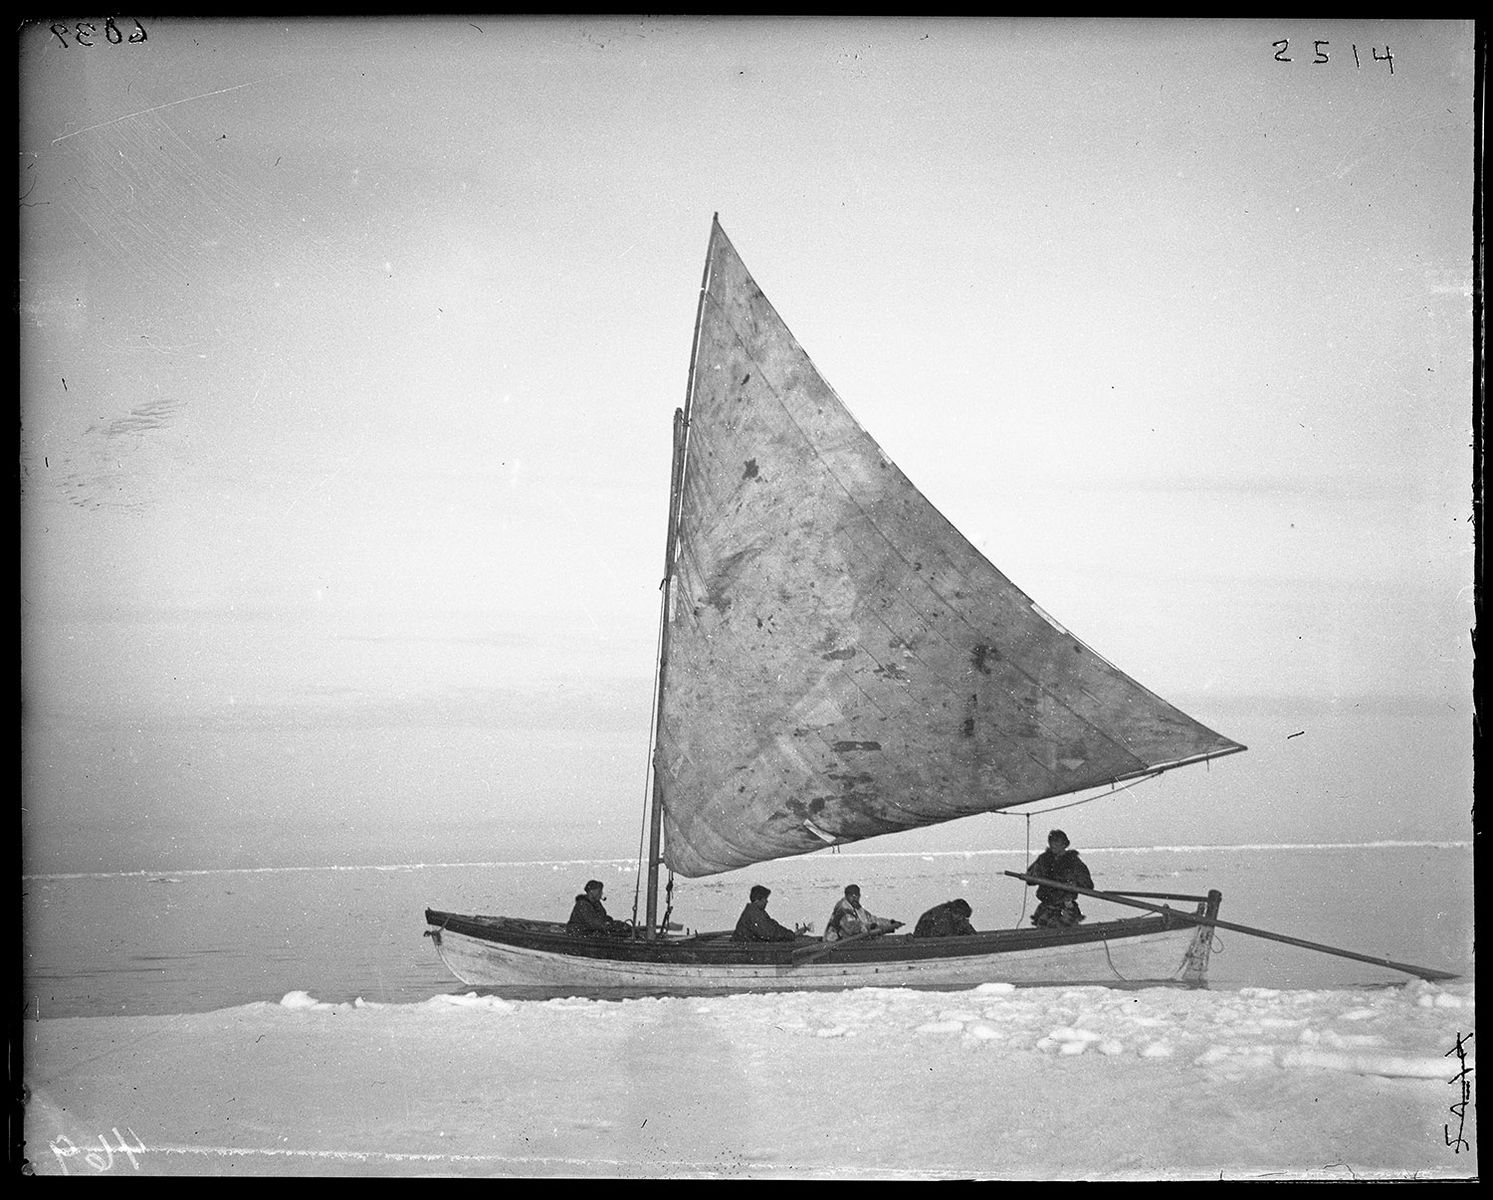 A small single sail boat carrying 5 people makes it's way across icy waters.